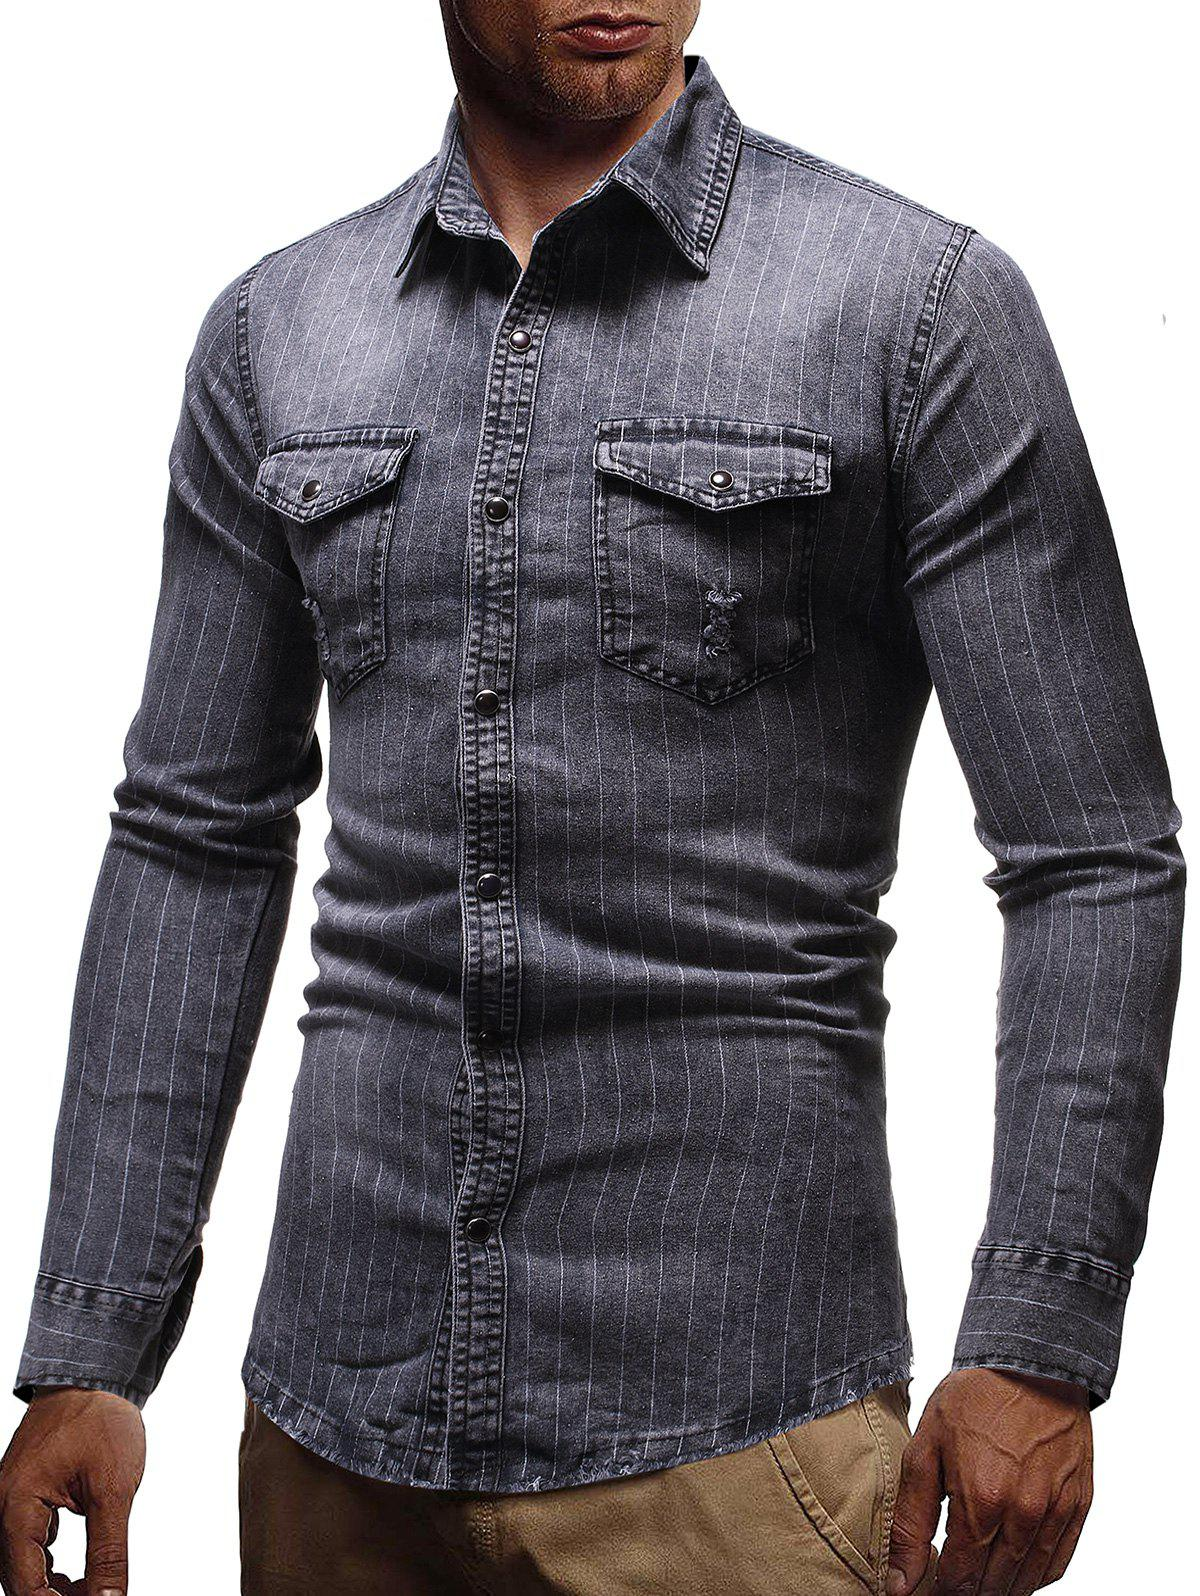 New Pinstriped Distressed Denim Button Up Shirt